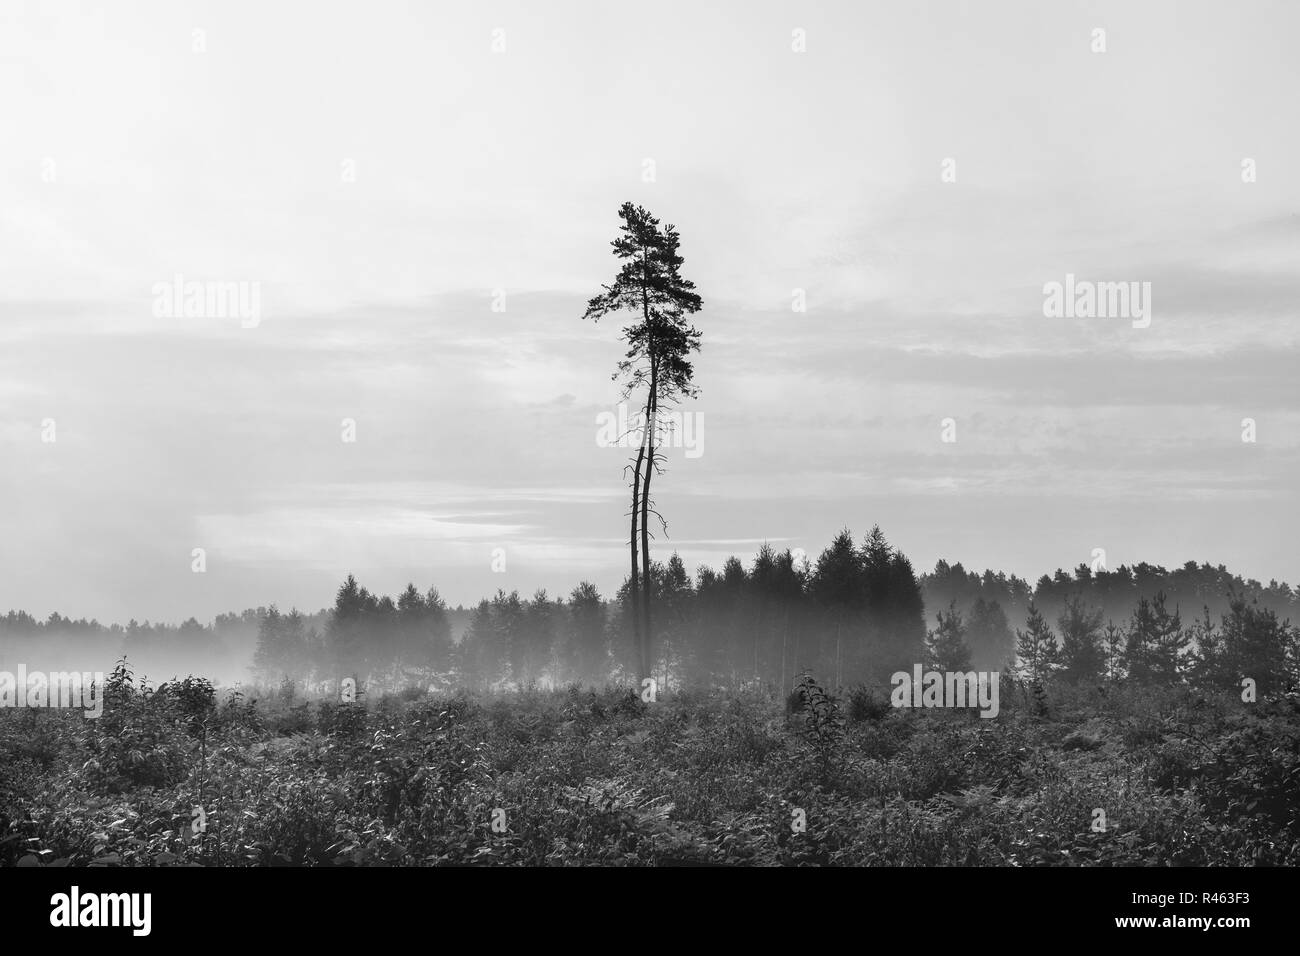 Silhouette of tall  pine tree on cleared area against morning mist - Stock Image